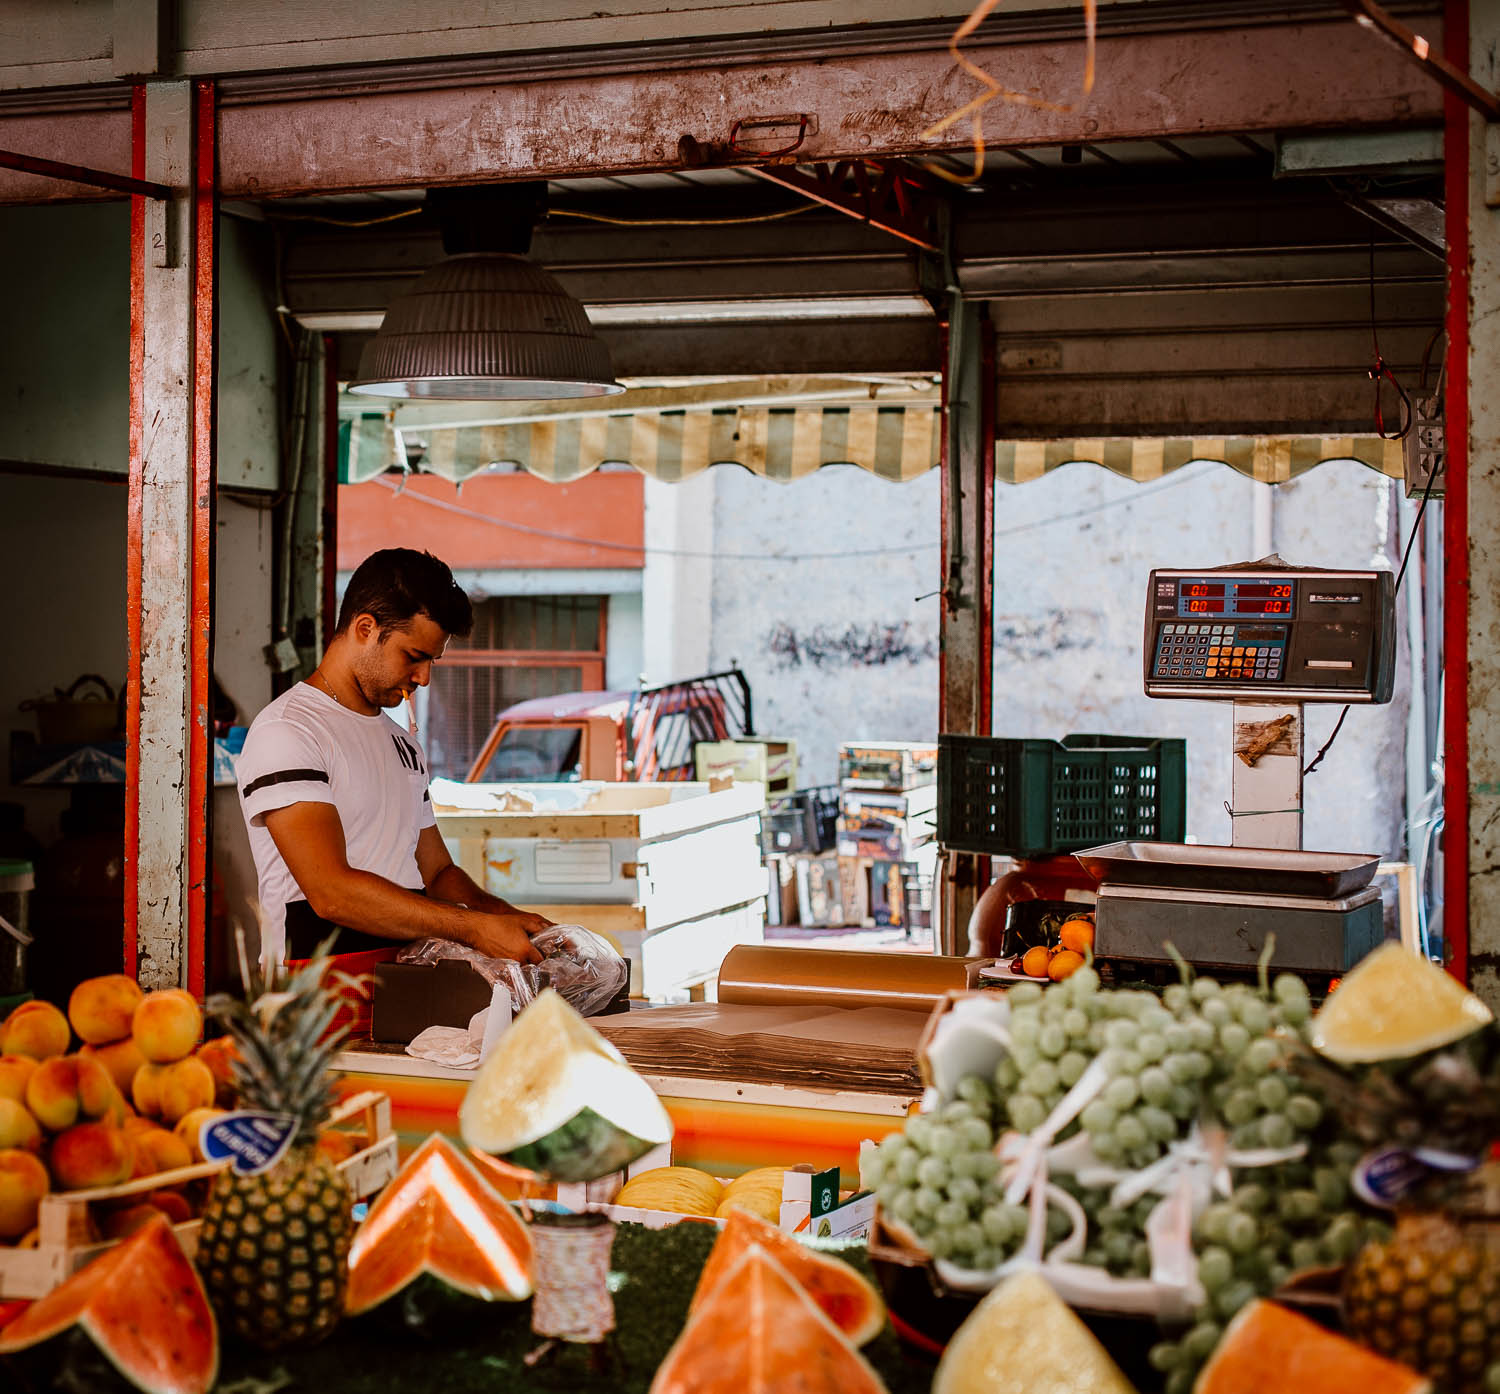 Markets in Palermo - Things to do in Palermo